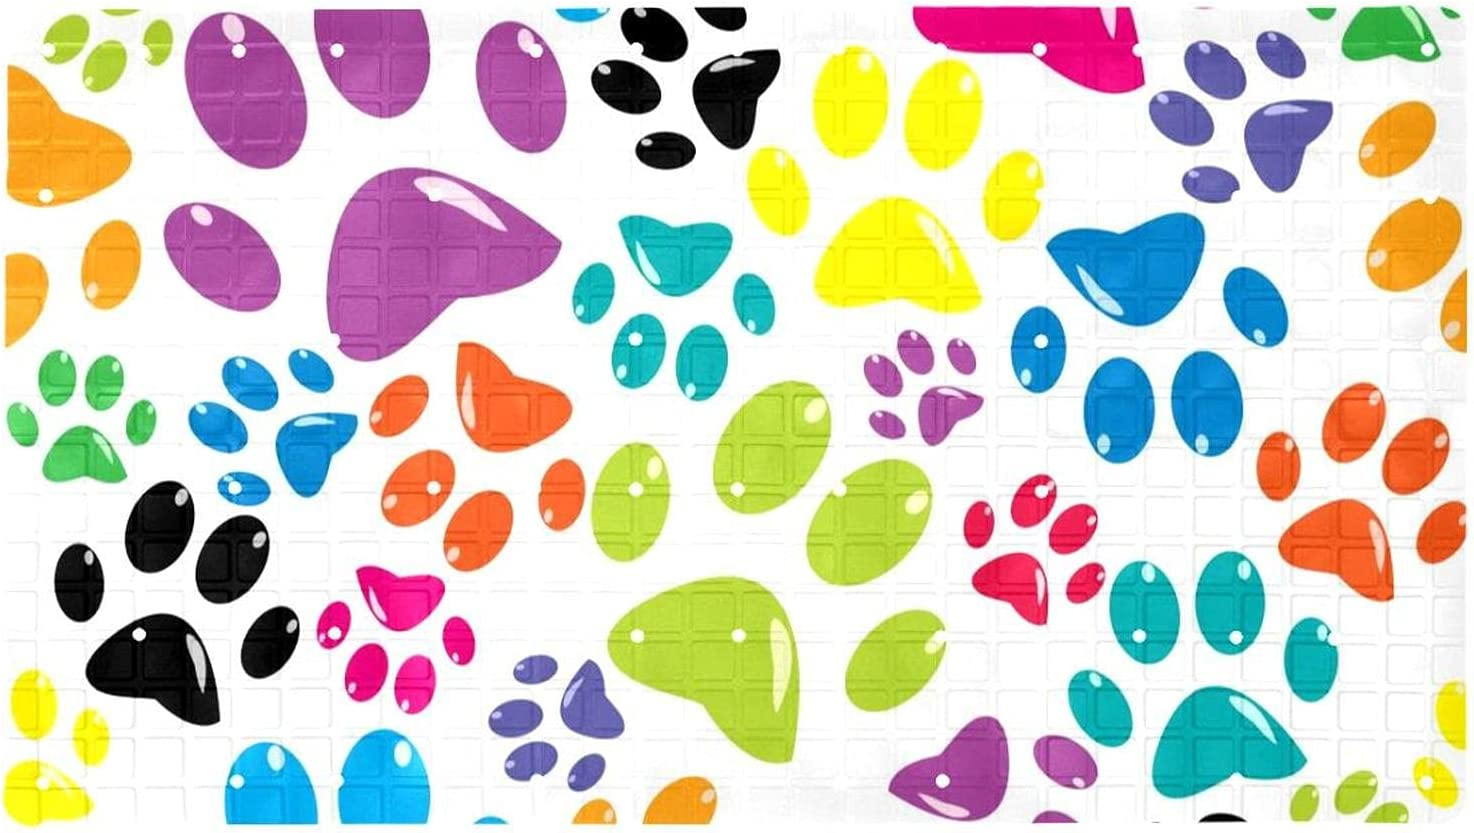 Bath Tub Shower Mat 15.7x27.9 inches Bombing new work Colored Paws P Pattern with Max 73% OFF